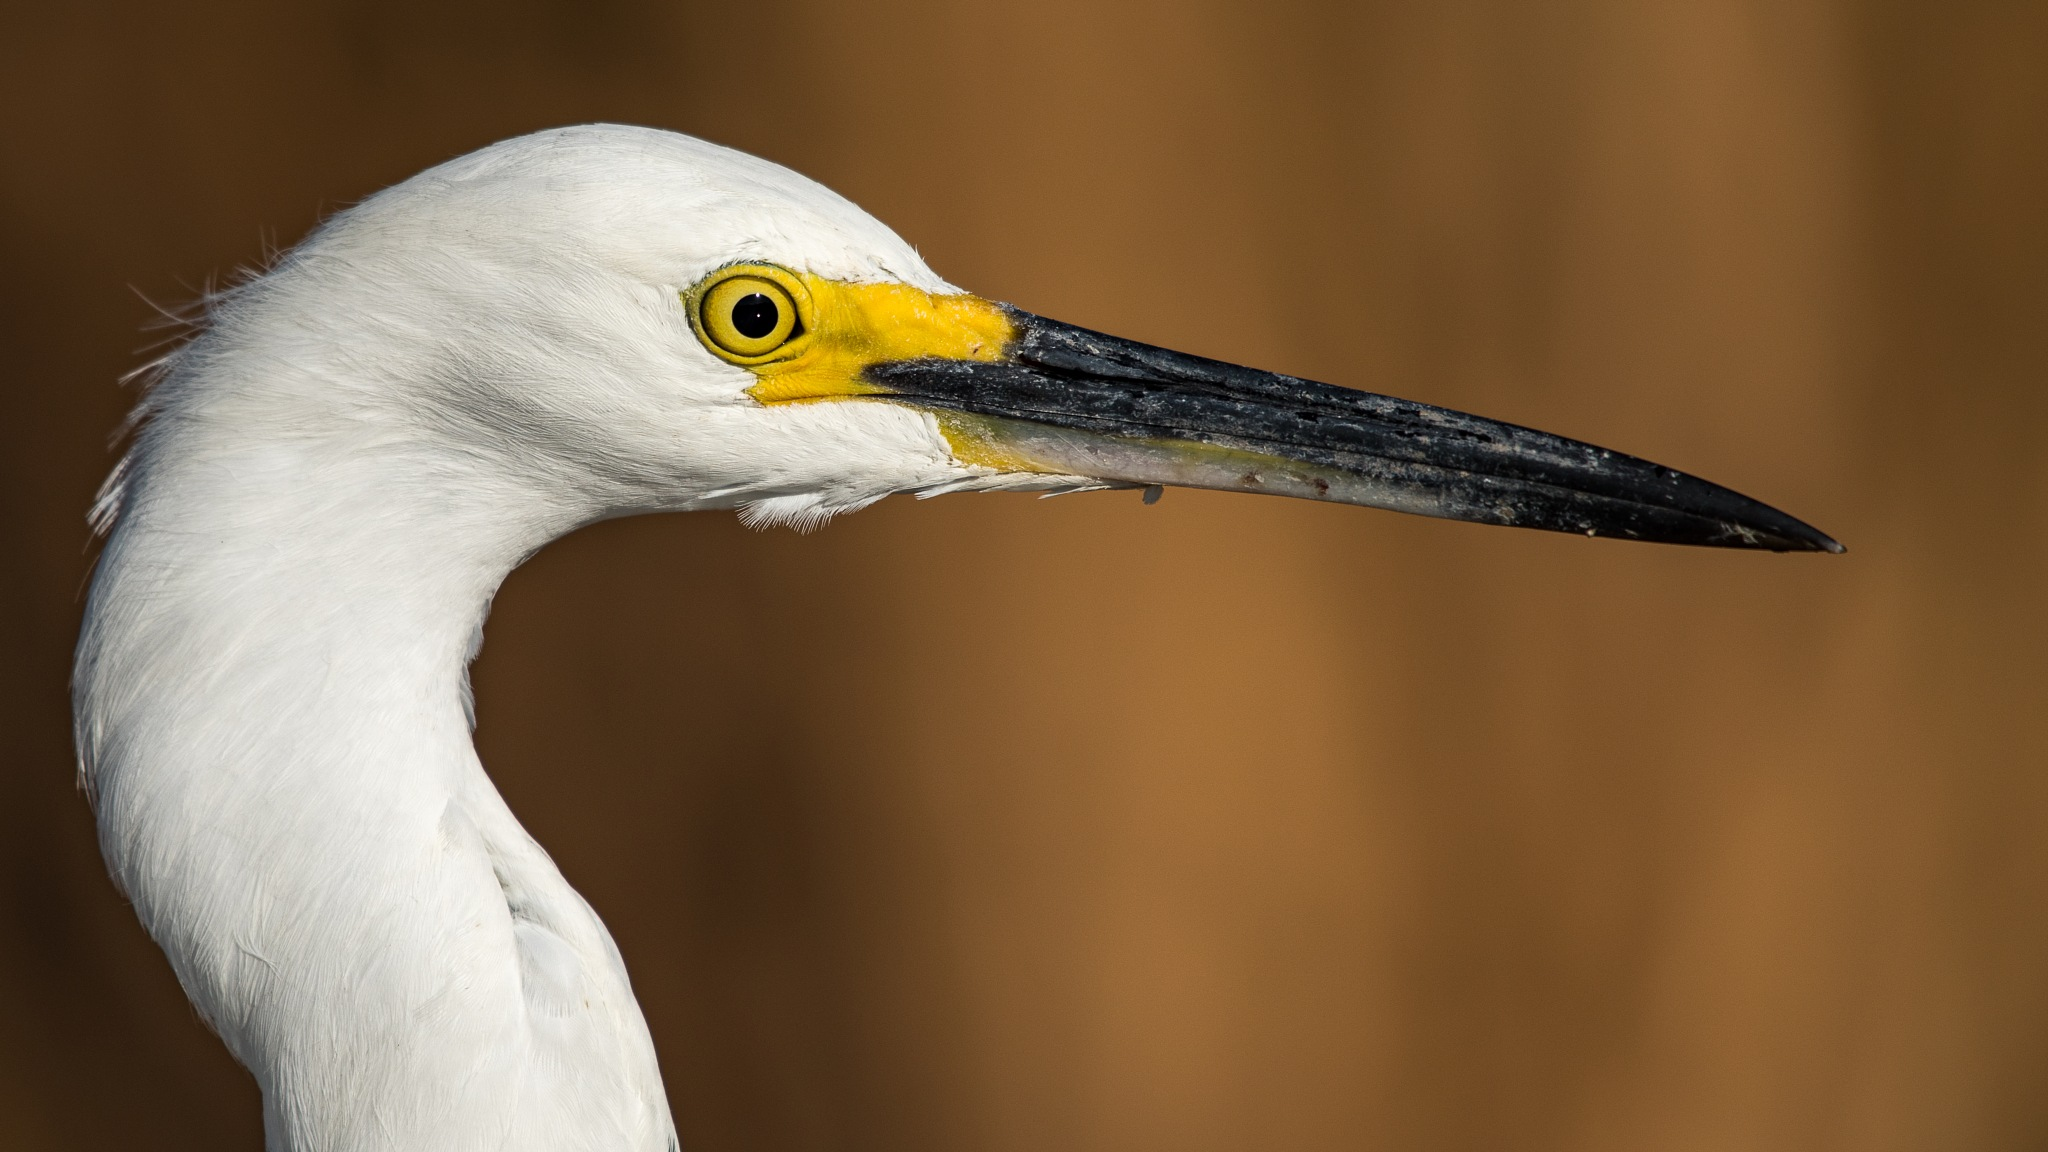 Great Egret Profile by Steve Aicinena